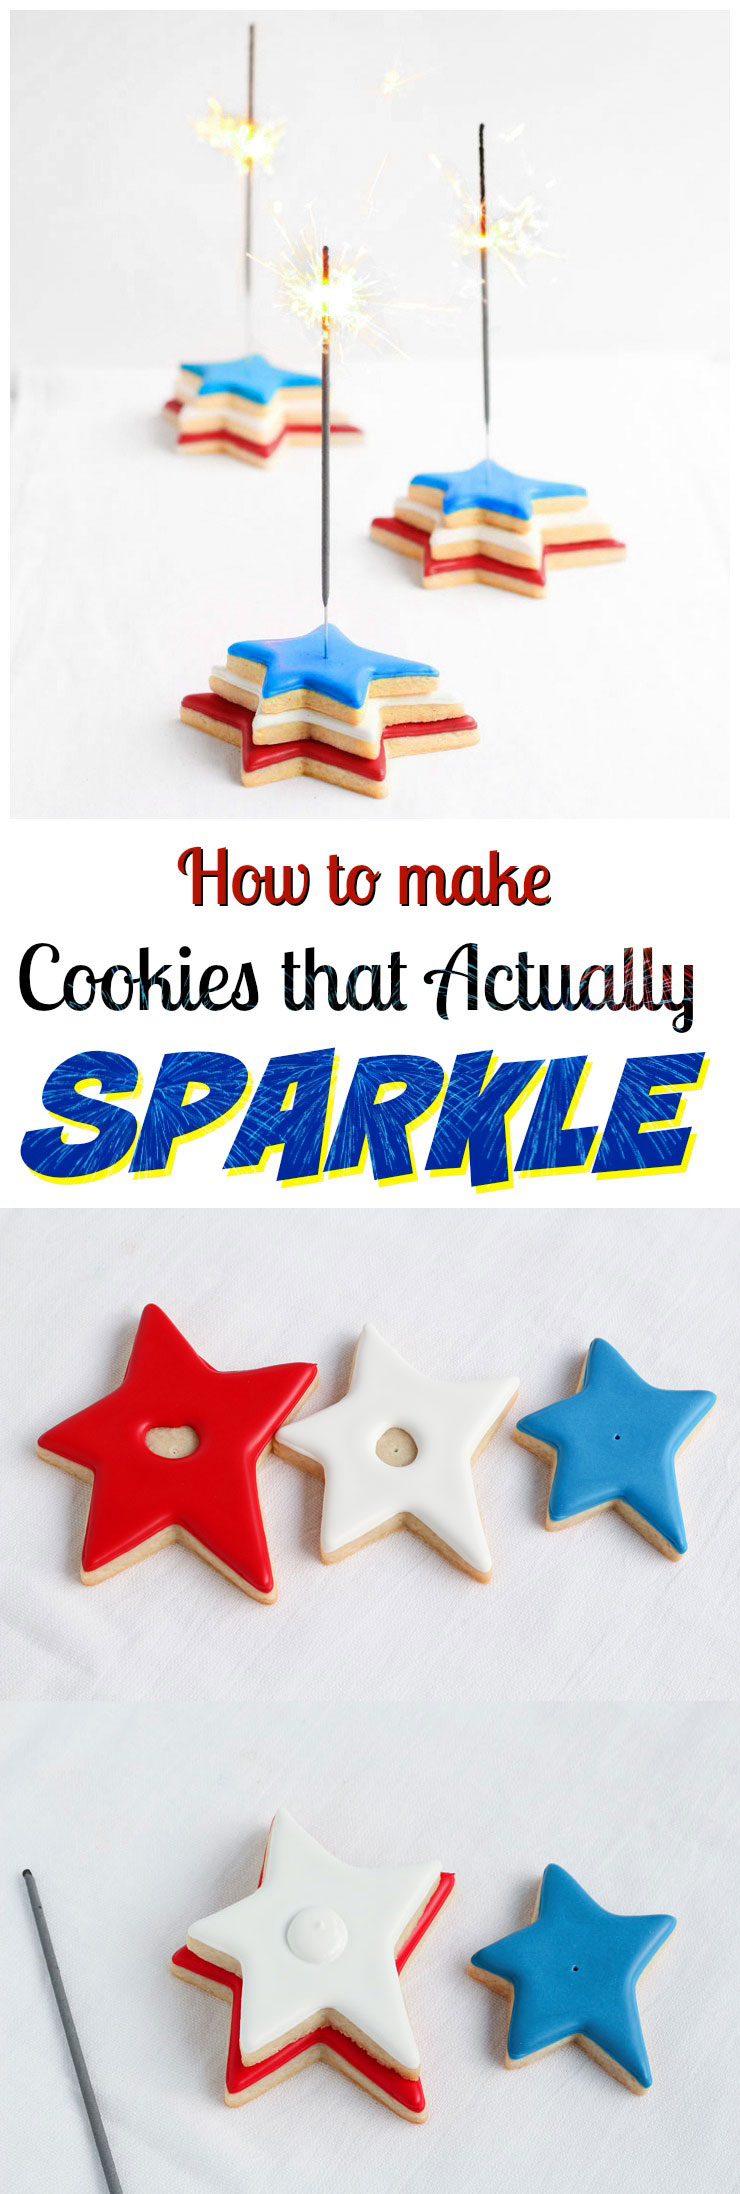 How-to-Make-Star-Cookies-that-Actually-Sparkle-via-www.thebearfootbaker.com